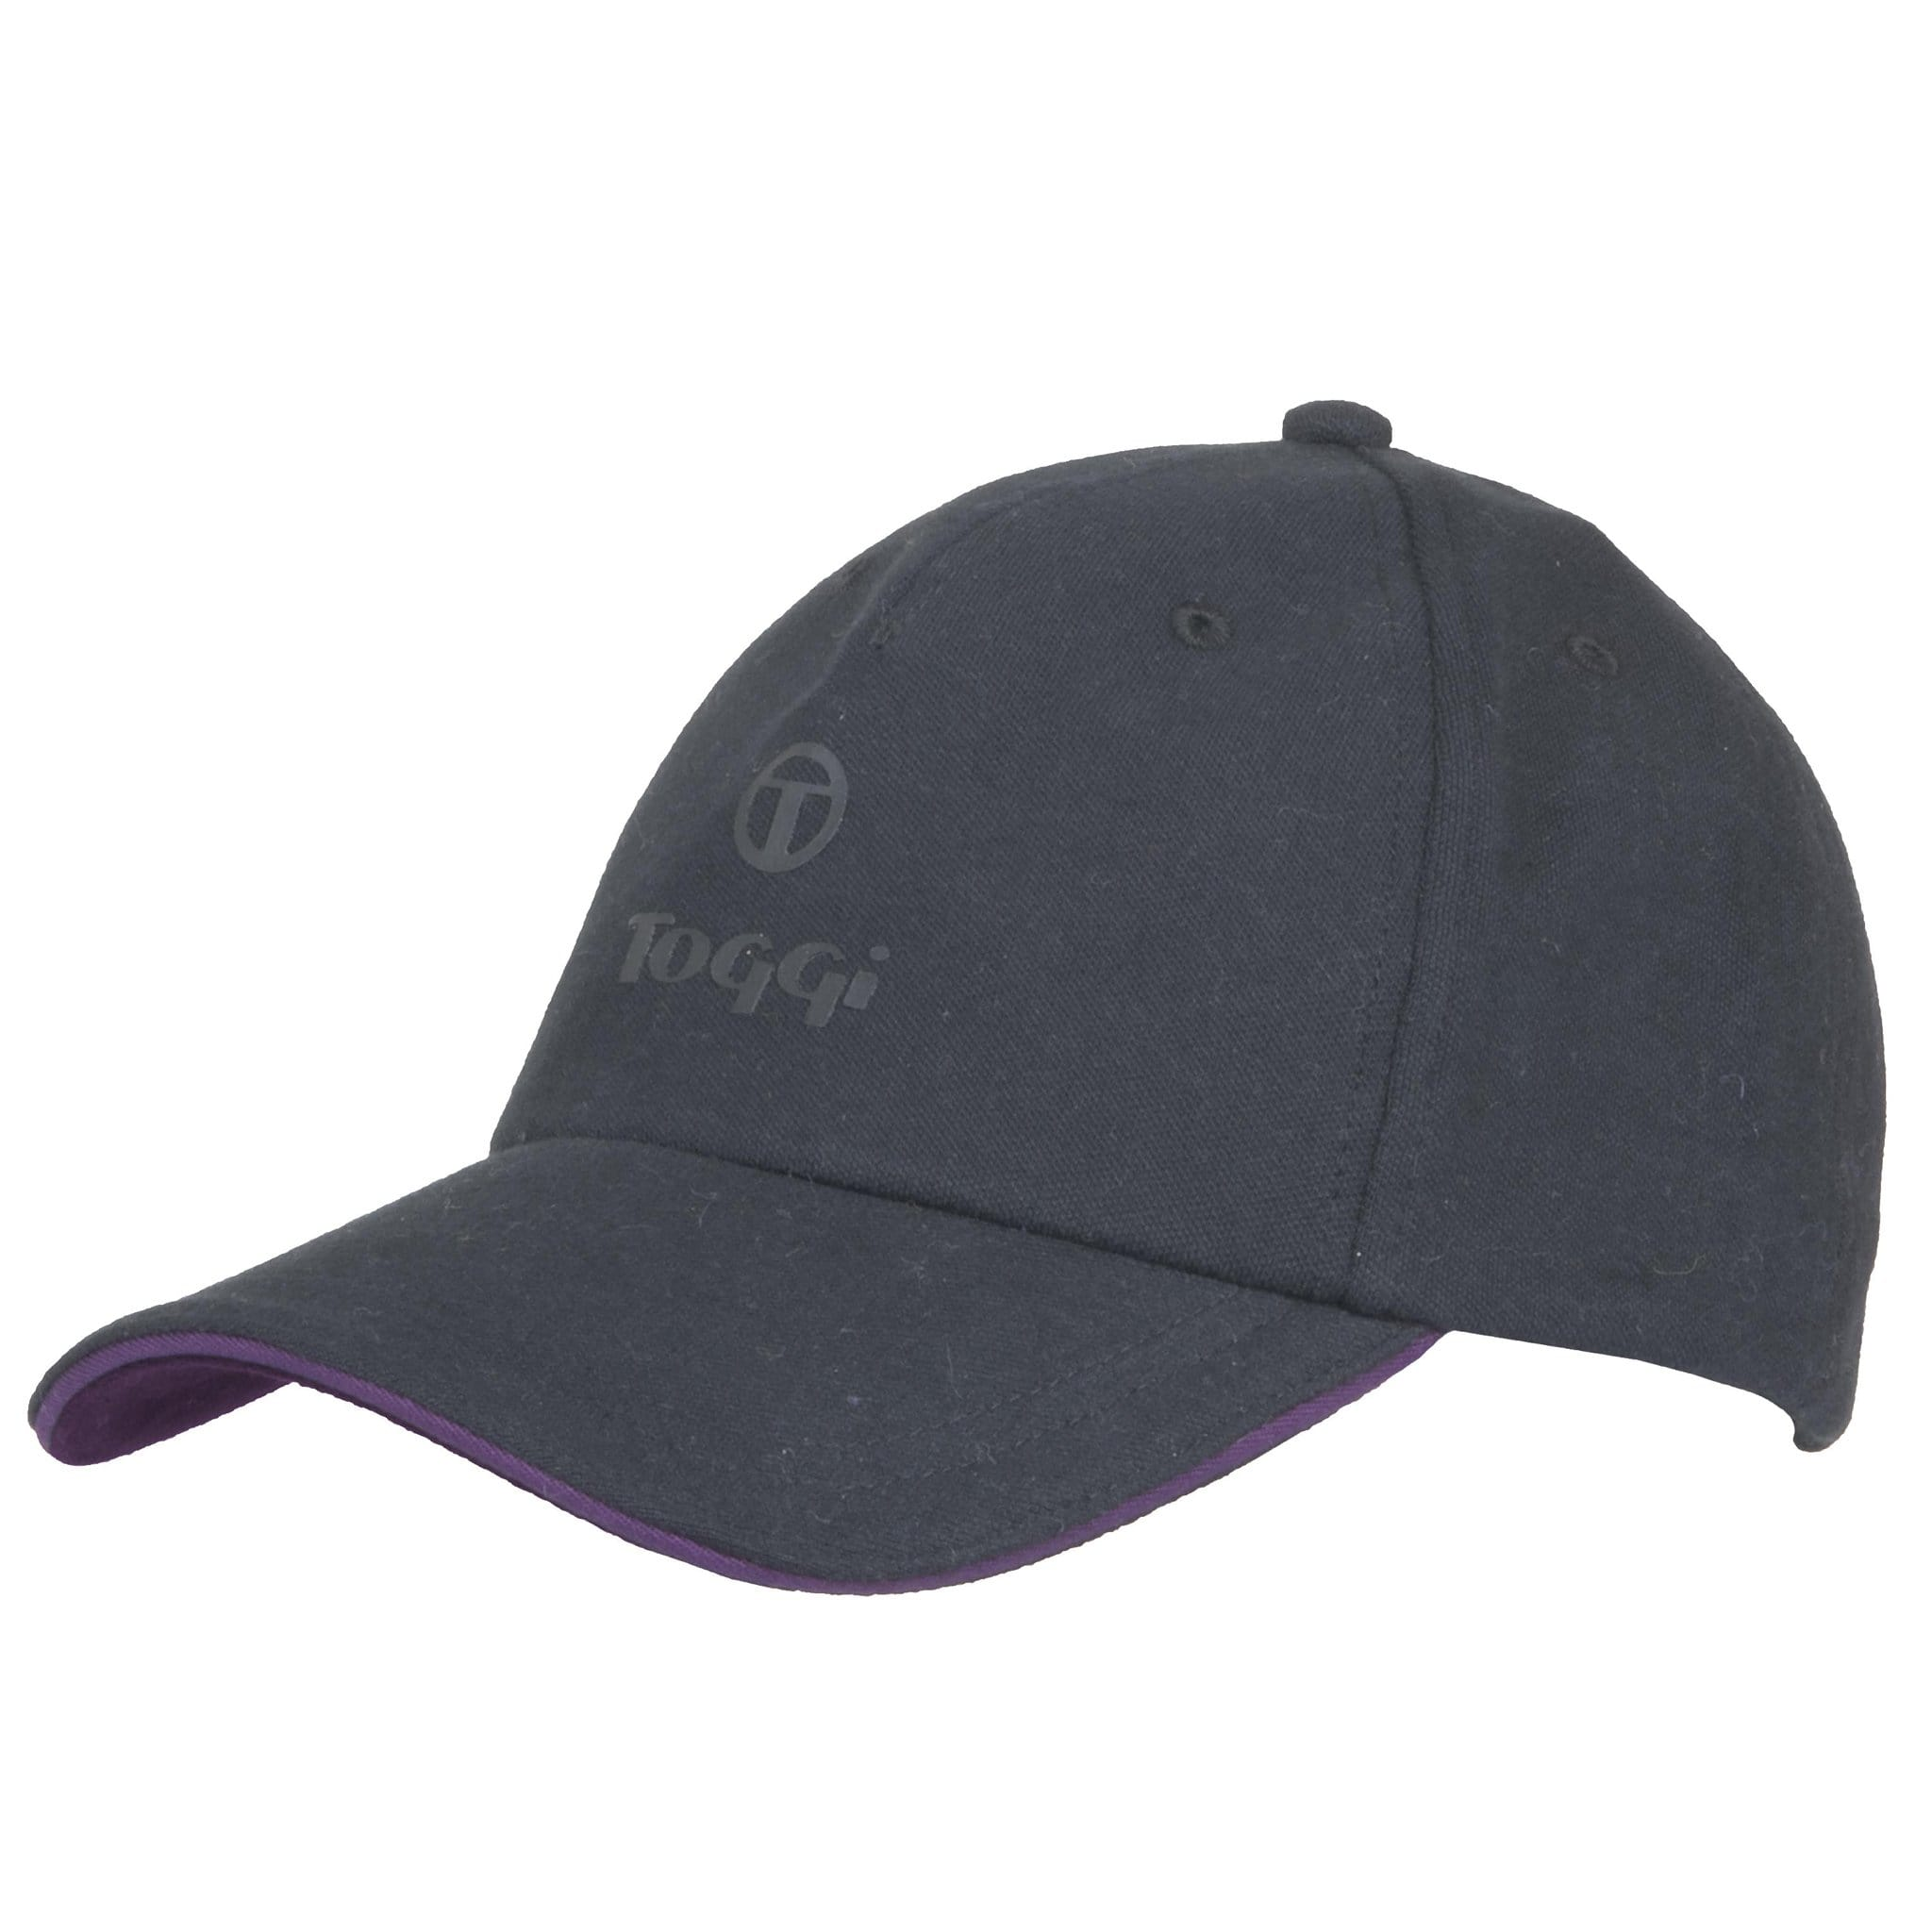 Toggi Wharton Ladies Baseball Cap in Black